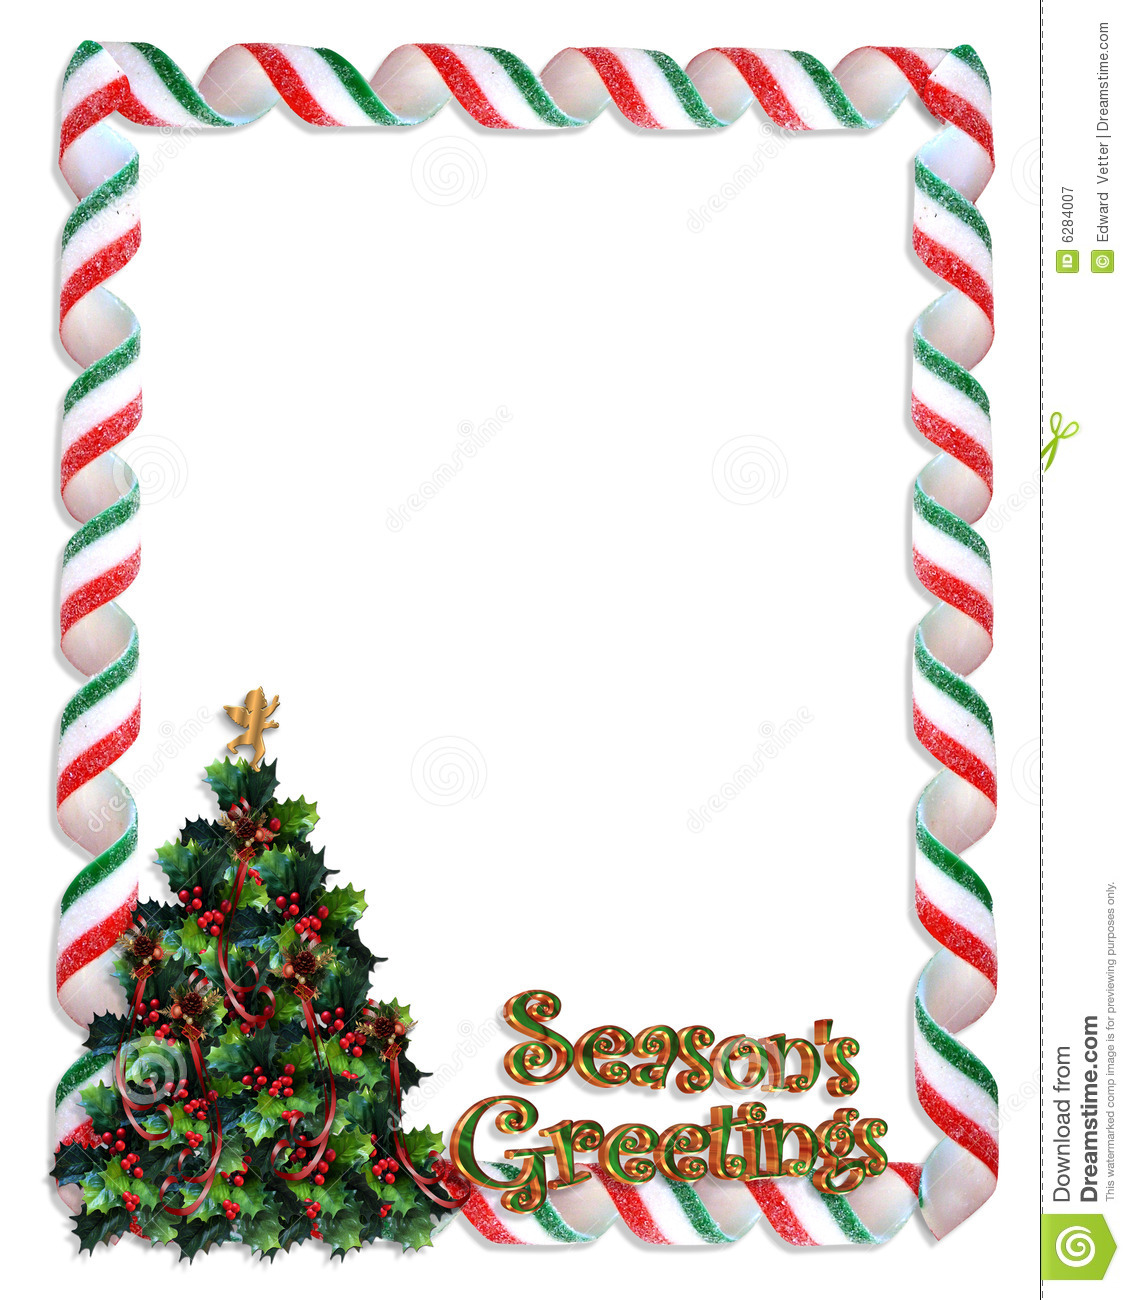 christmas borders free download - Selom.digitalsite.co